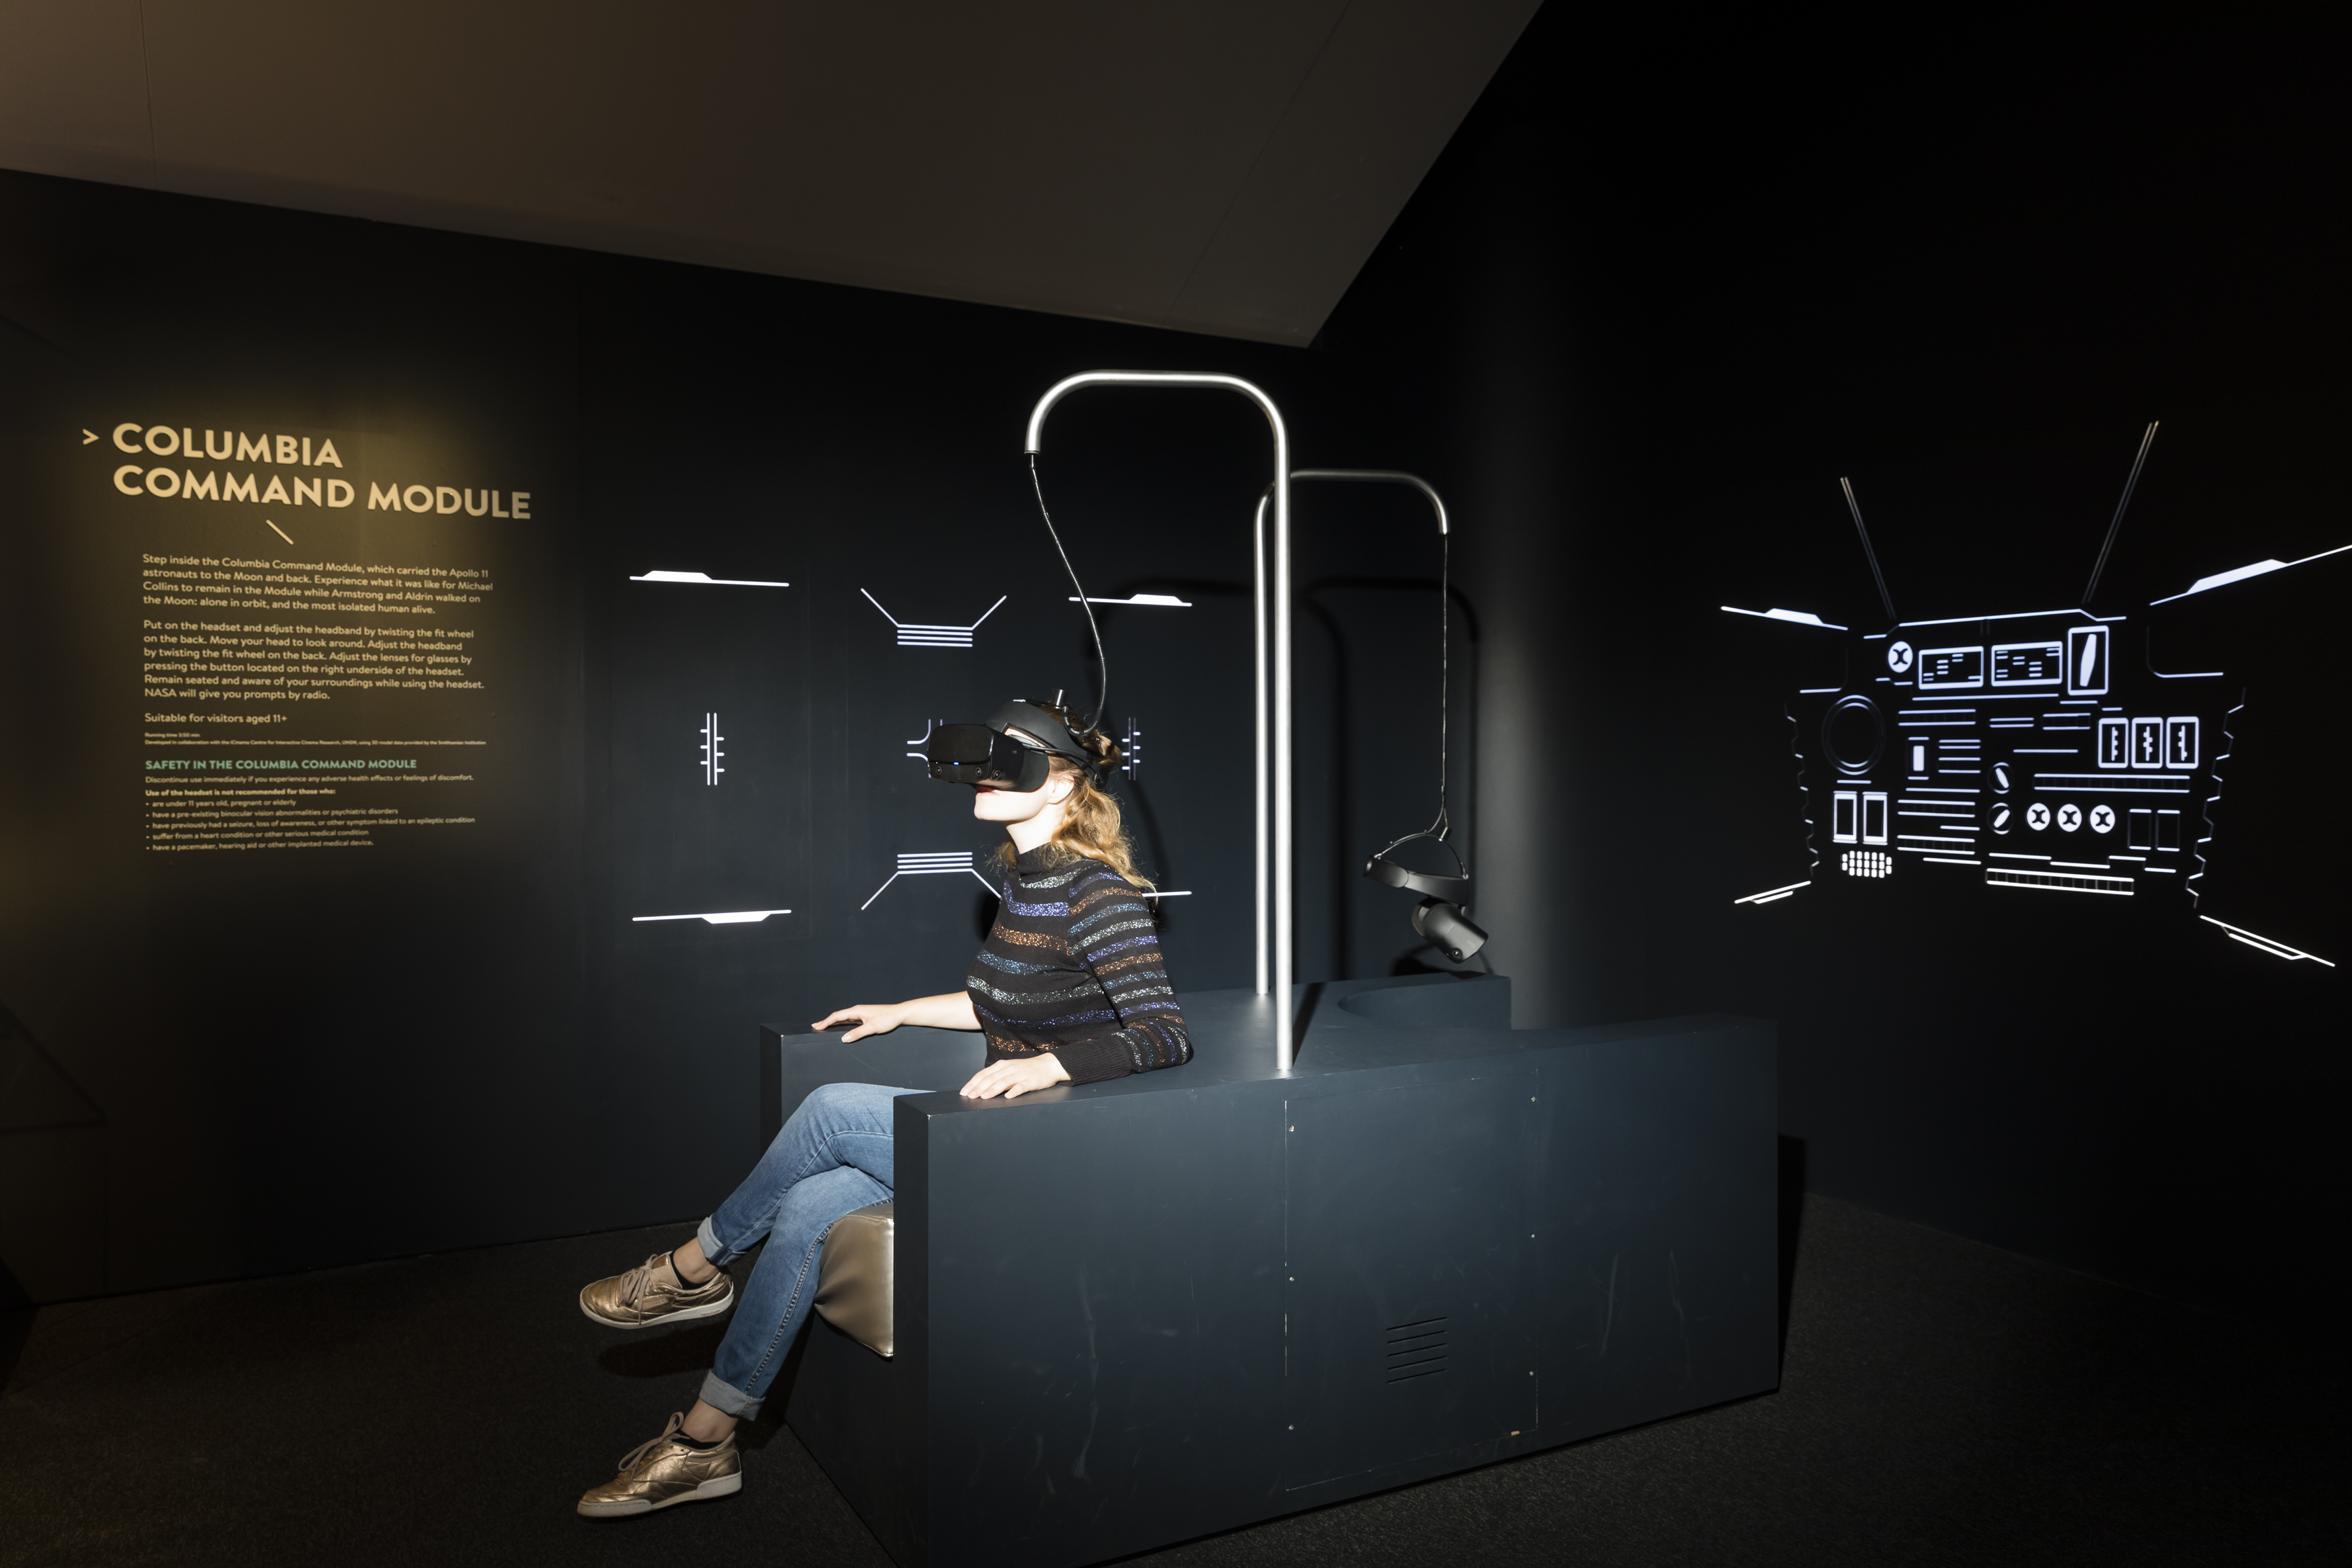 Dark nook with two seats built back-to-back. Above each seat dangles a VR headset attached to a metal pole. A woman sits in one seat wearing the headset. On the walls is an instructional text panel and backlit schematics of the Columbia control panels.